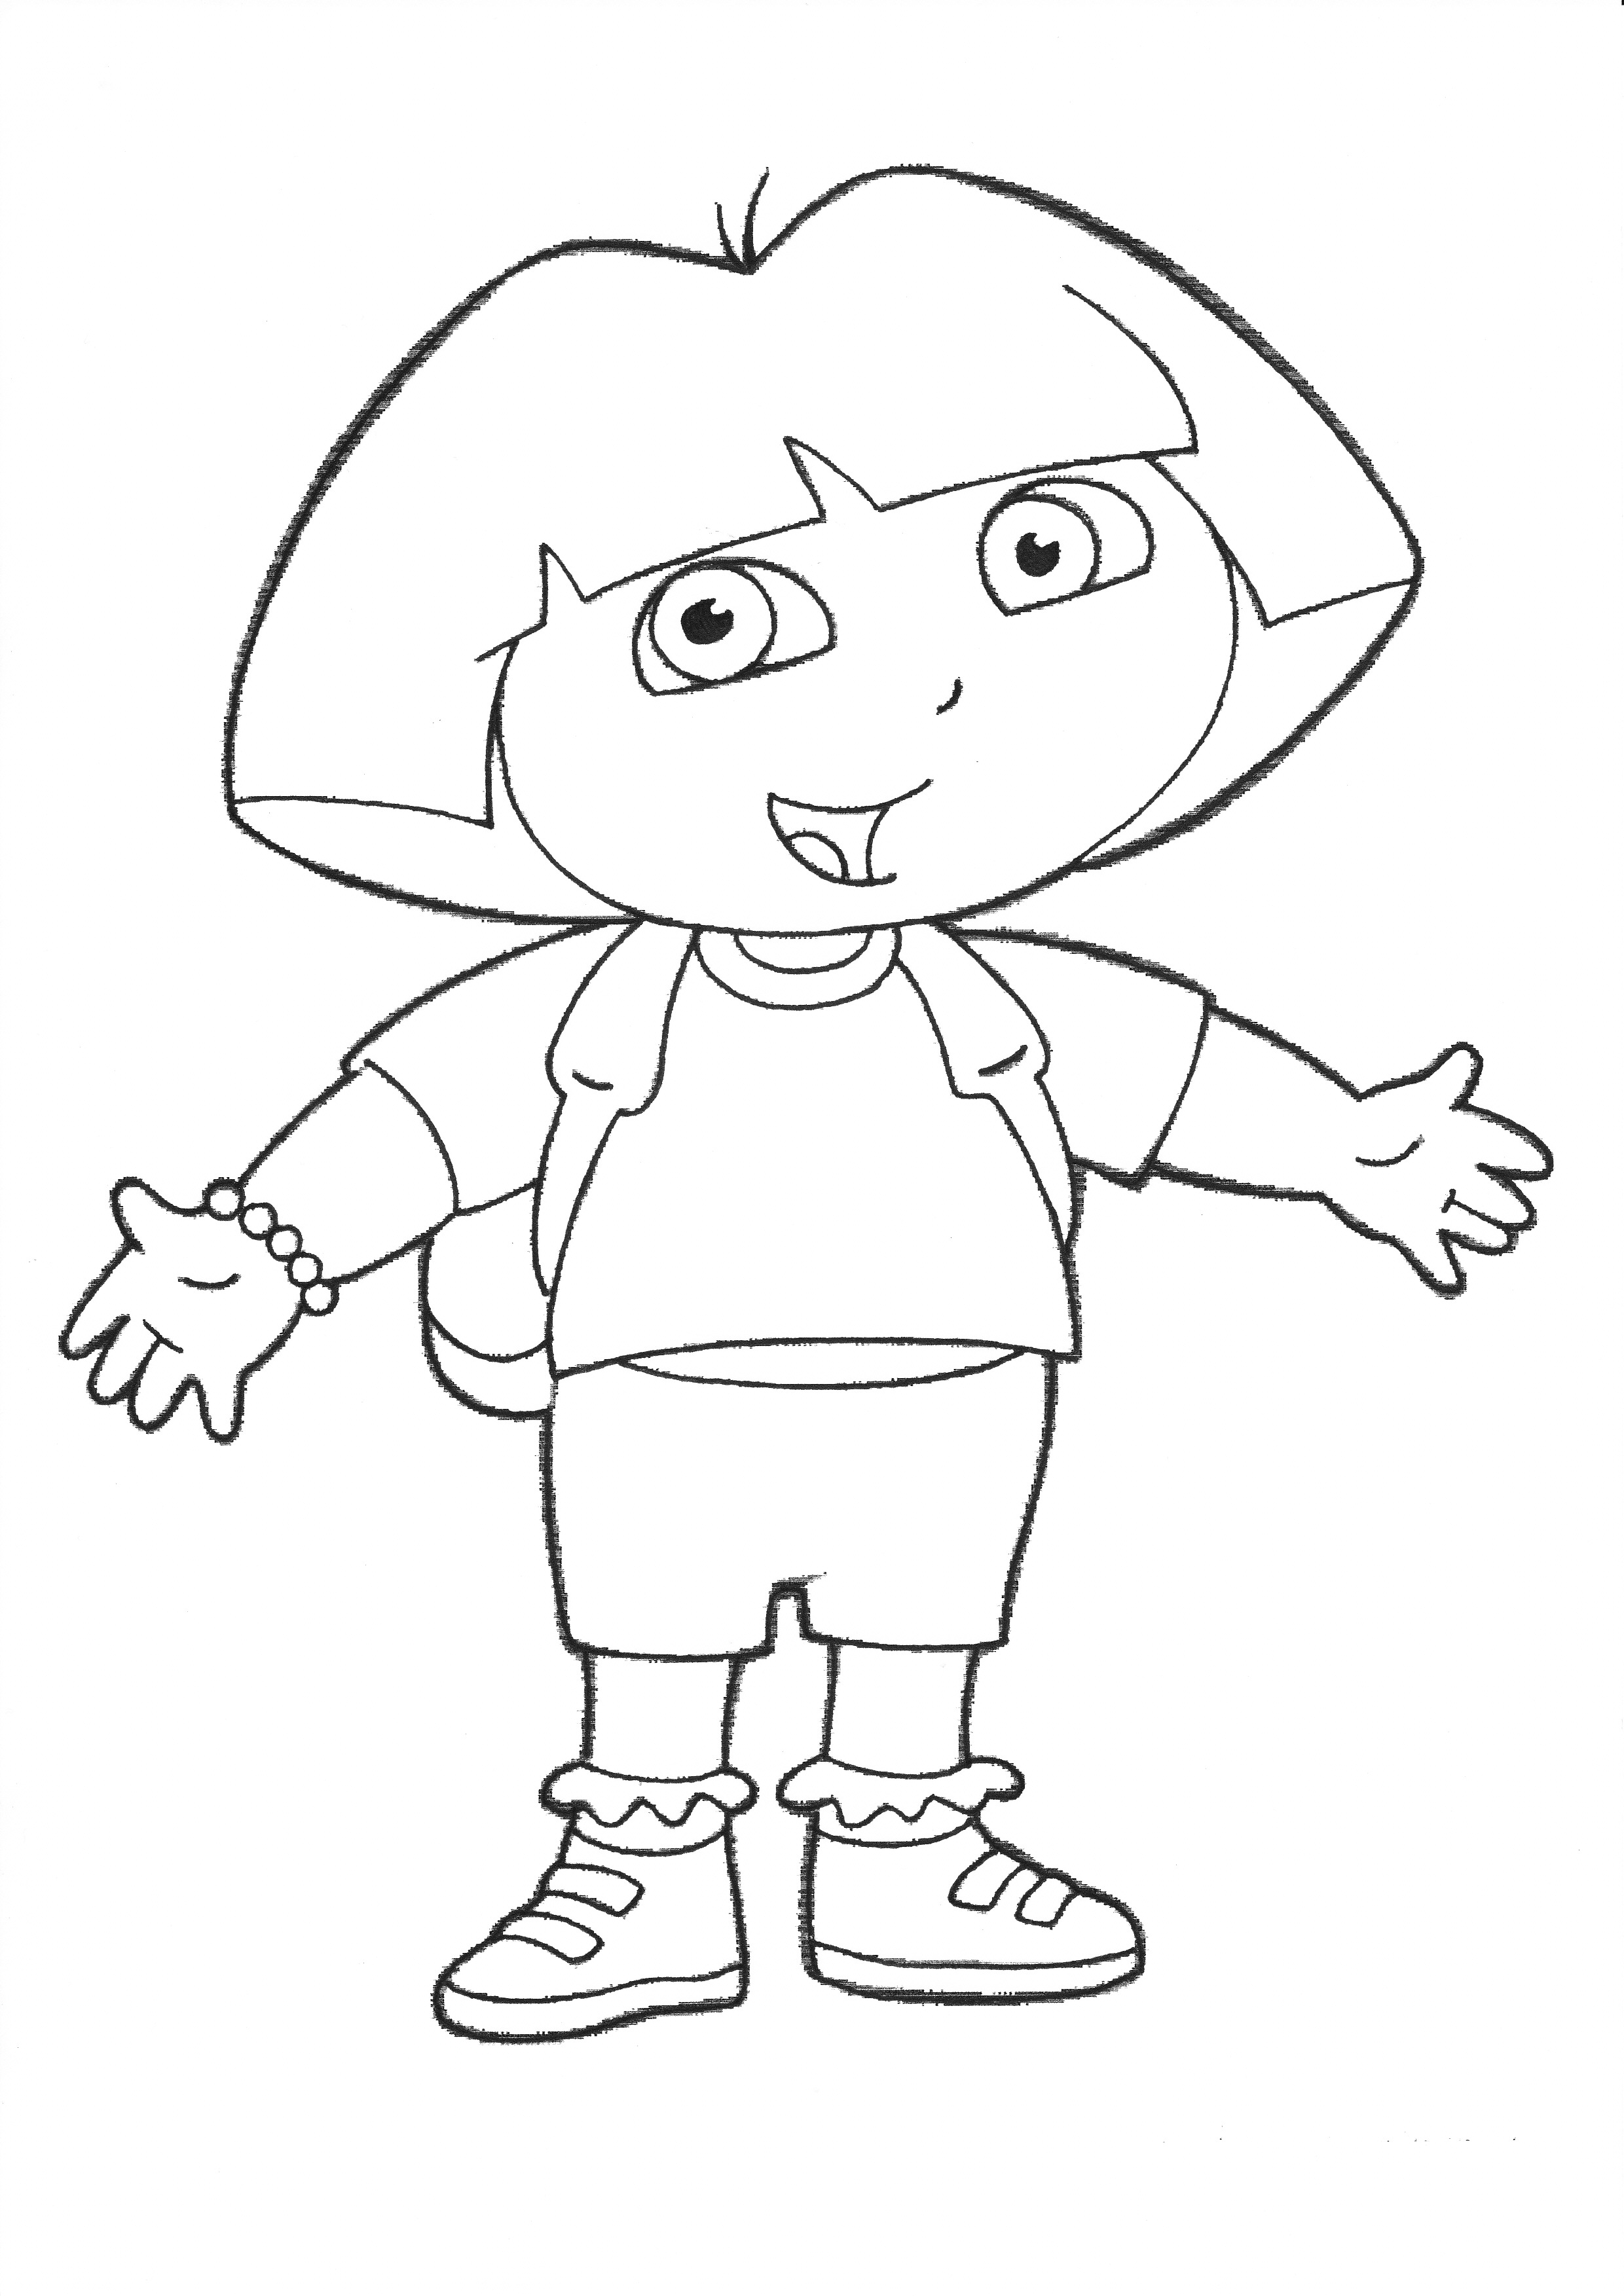 printable dora pictures print download dora coloring pages to learn new things pictures printable dora